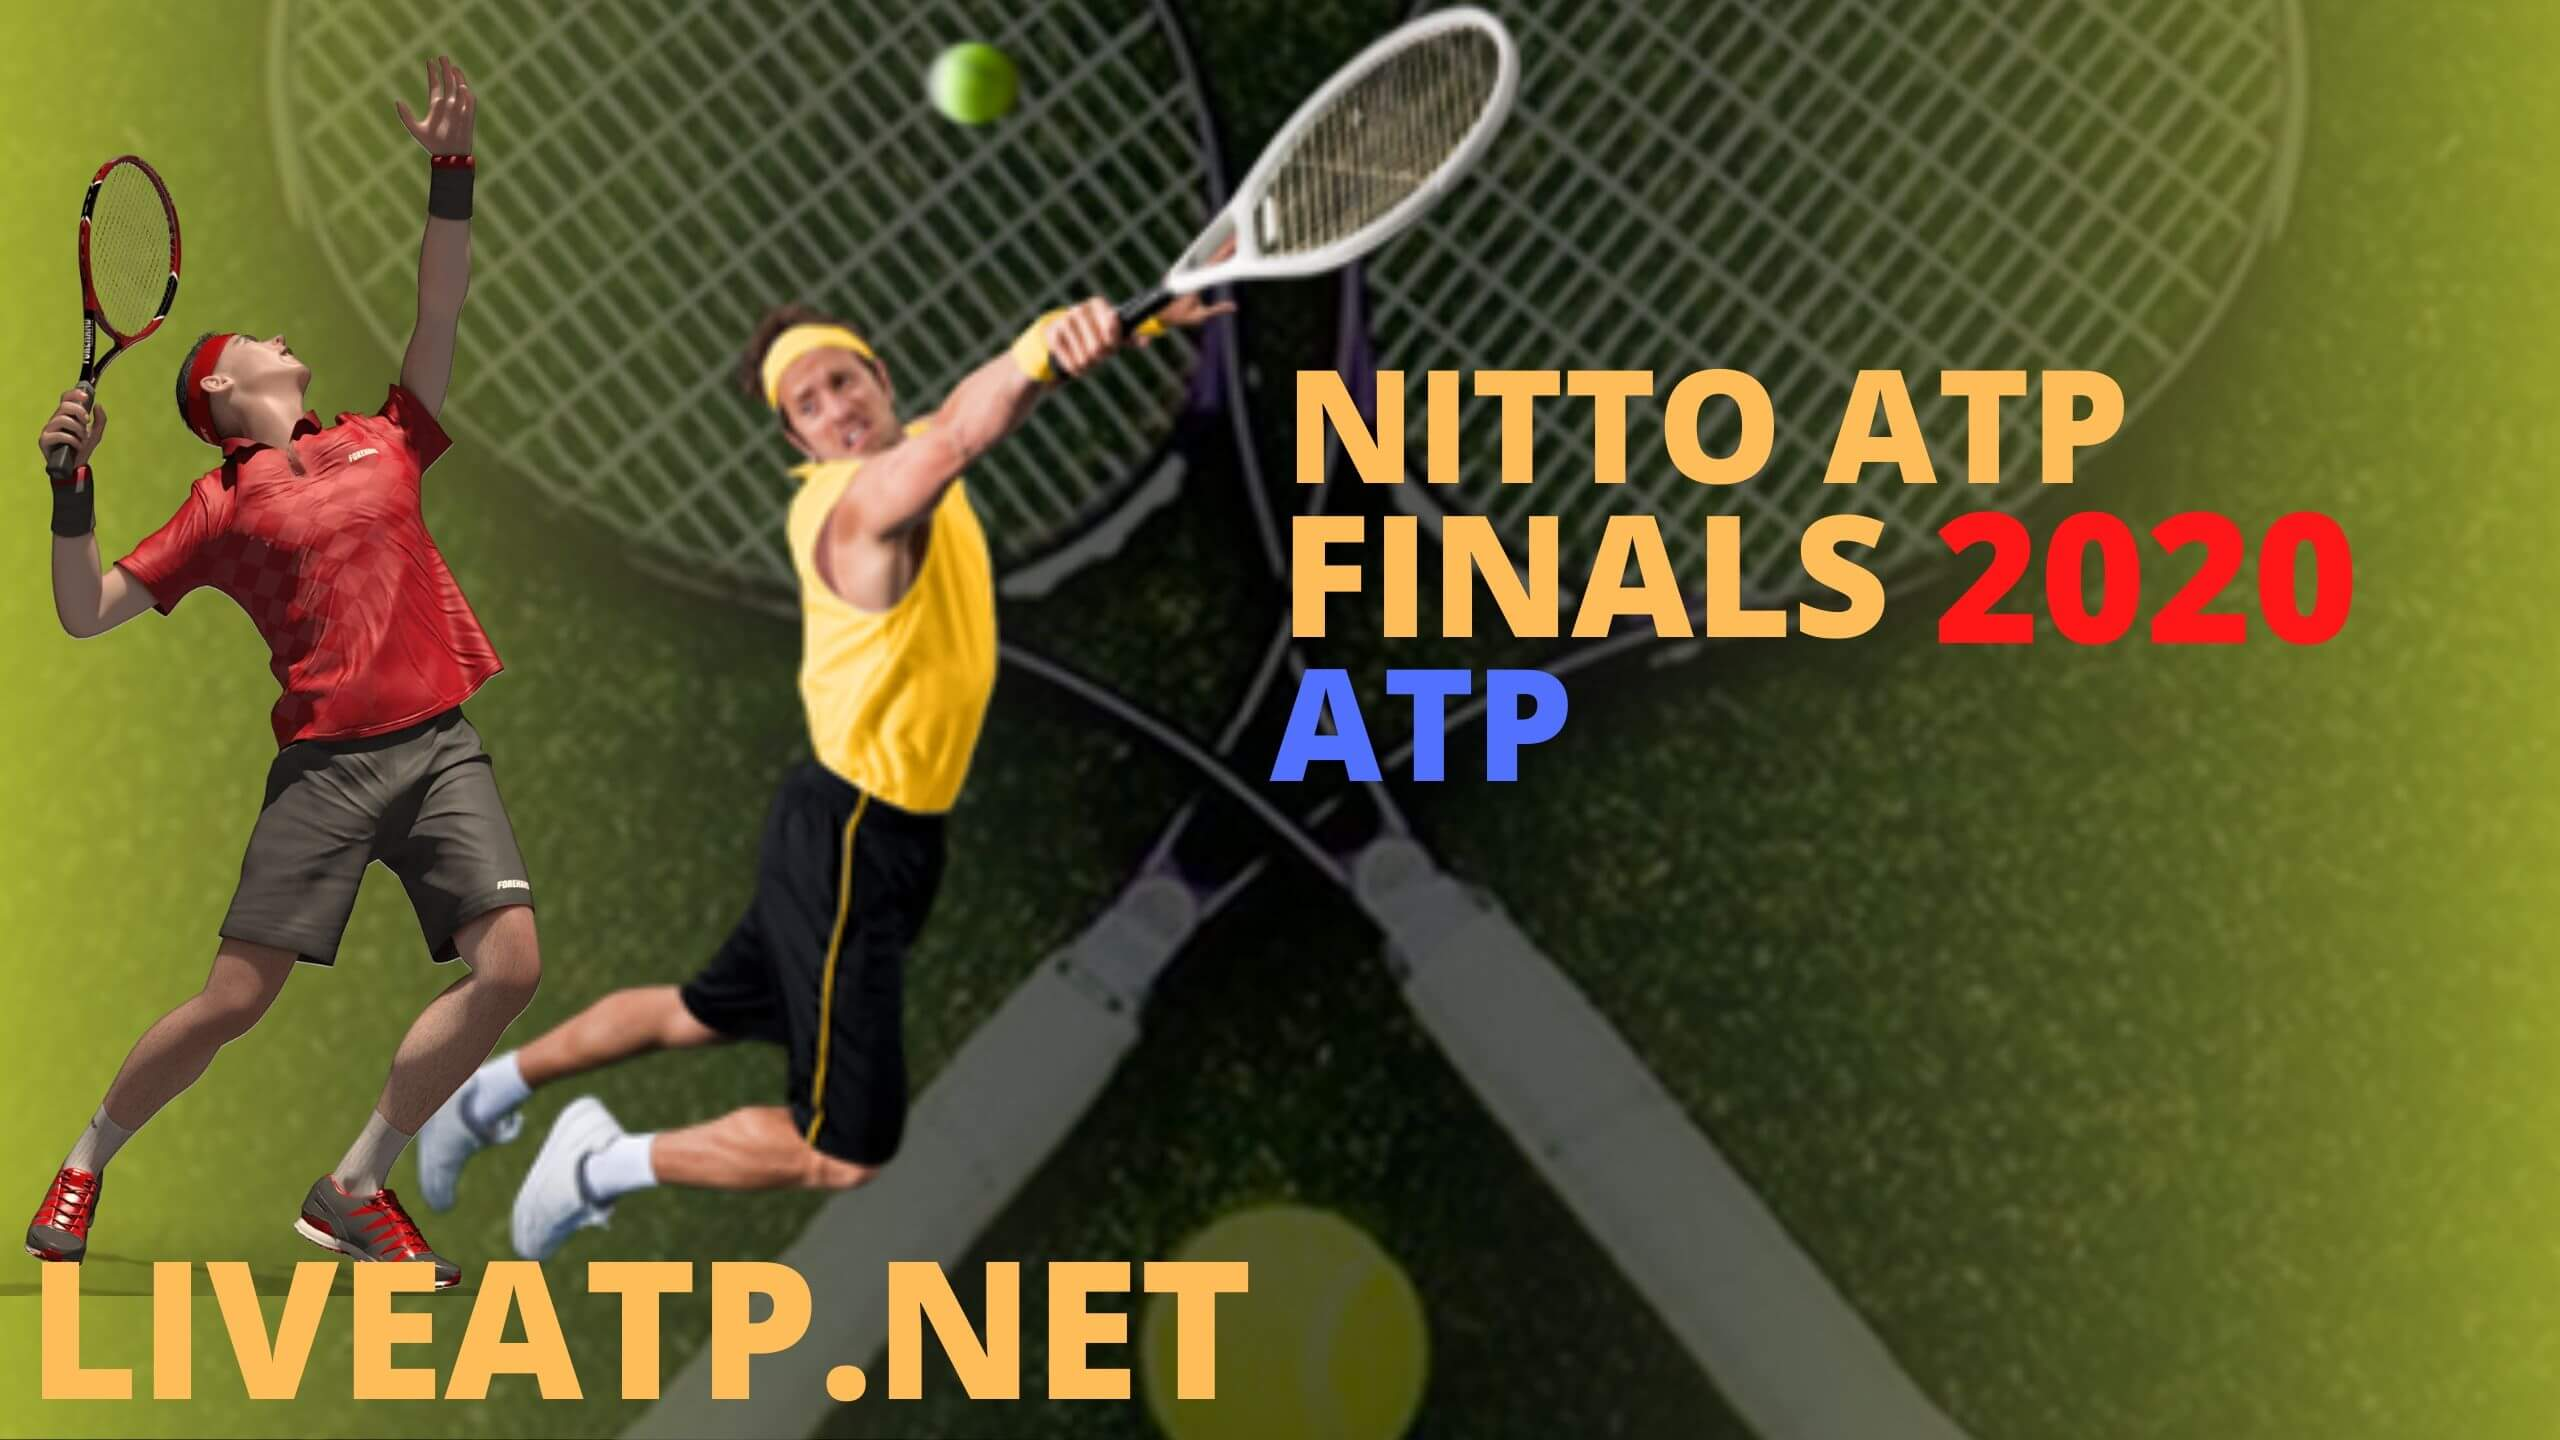 Nitto ATP Finals Live Stream 2020 |  Day 5